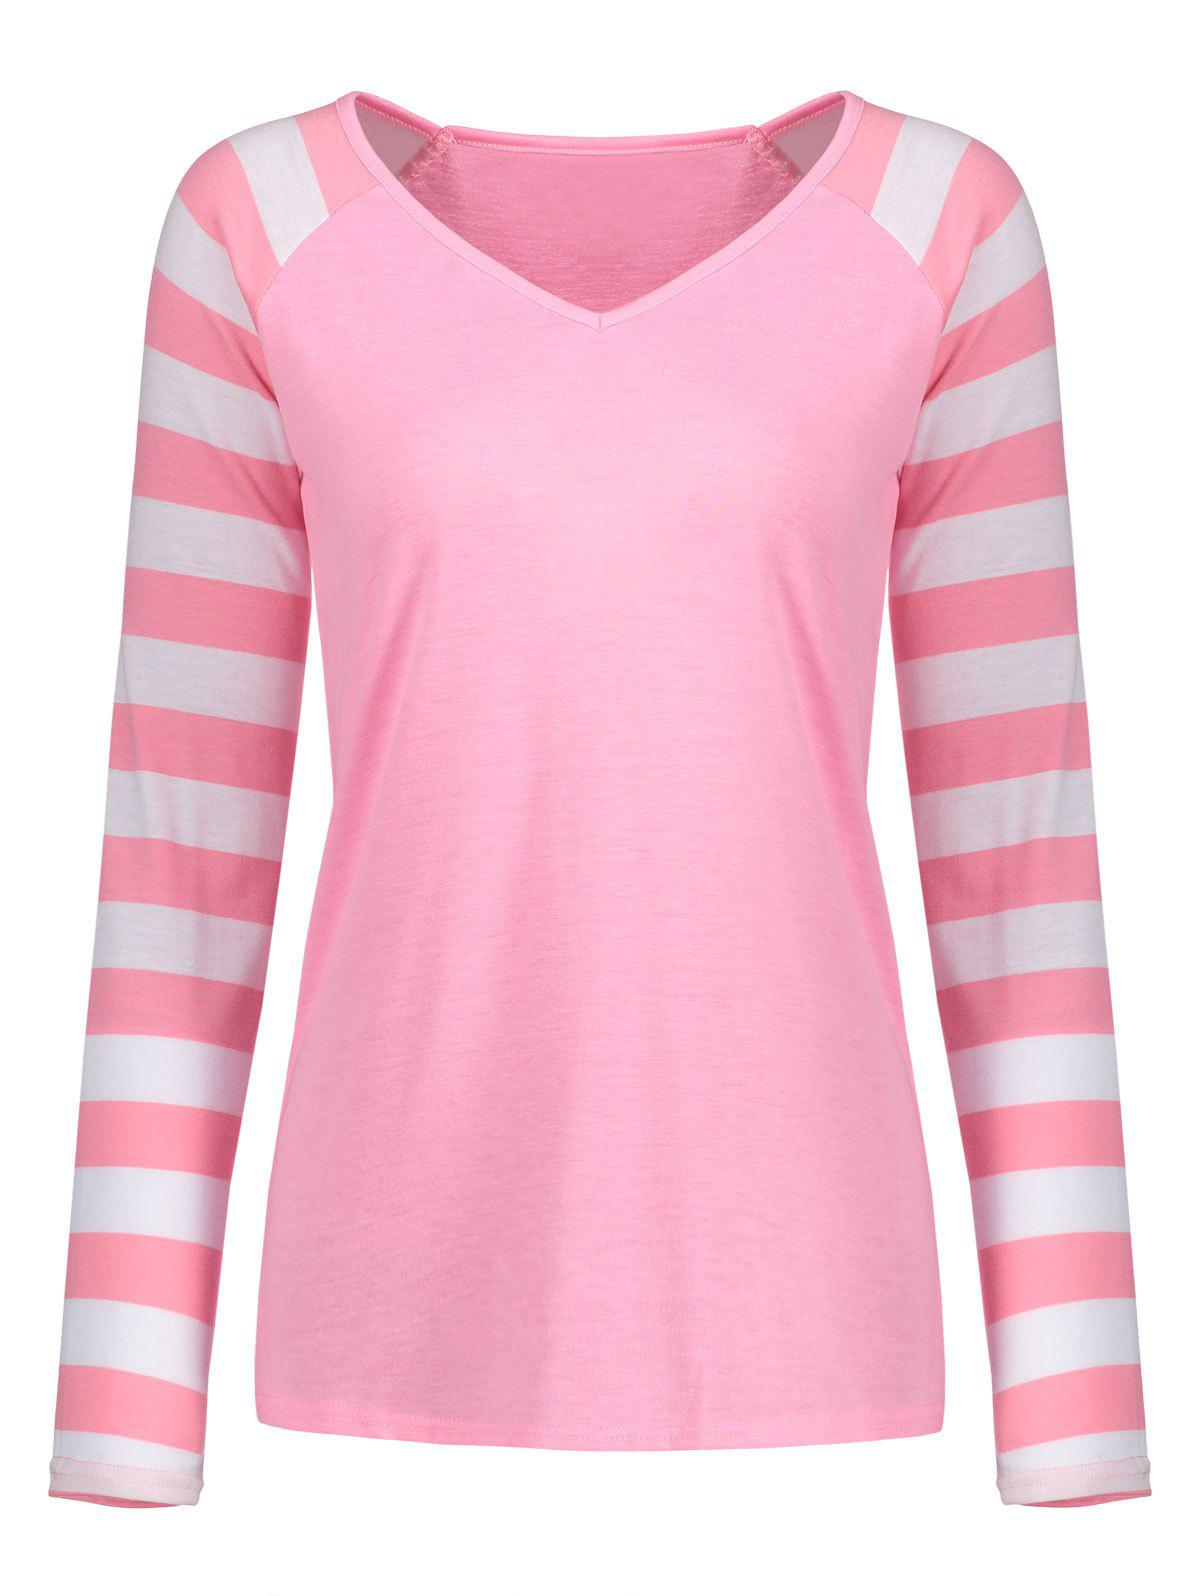 V Neck Striped Raglan Sleeve TopWOMEN<br><br>Size: L; Color: PINK; Material: Polyester,Spandex; Shirt Length: Regular; Sleeve Length: Full; Collar: V-Neck; Style: Casual; Pattern Type: Striped; Season: Fall,Spring; Weight: 0.2700kg; Package Contents: 1 x Top;